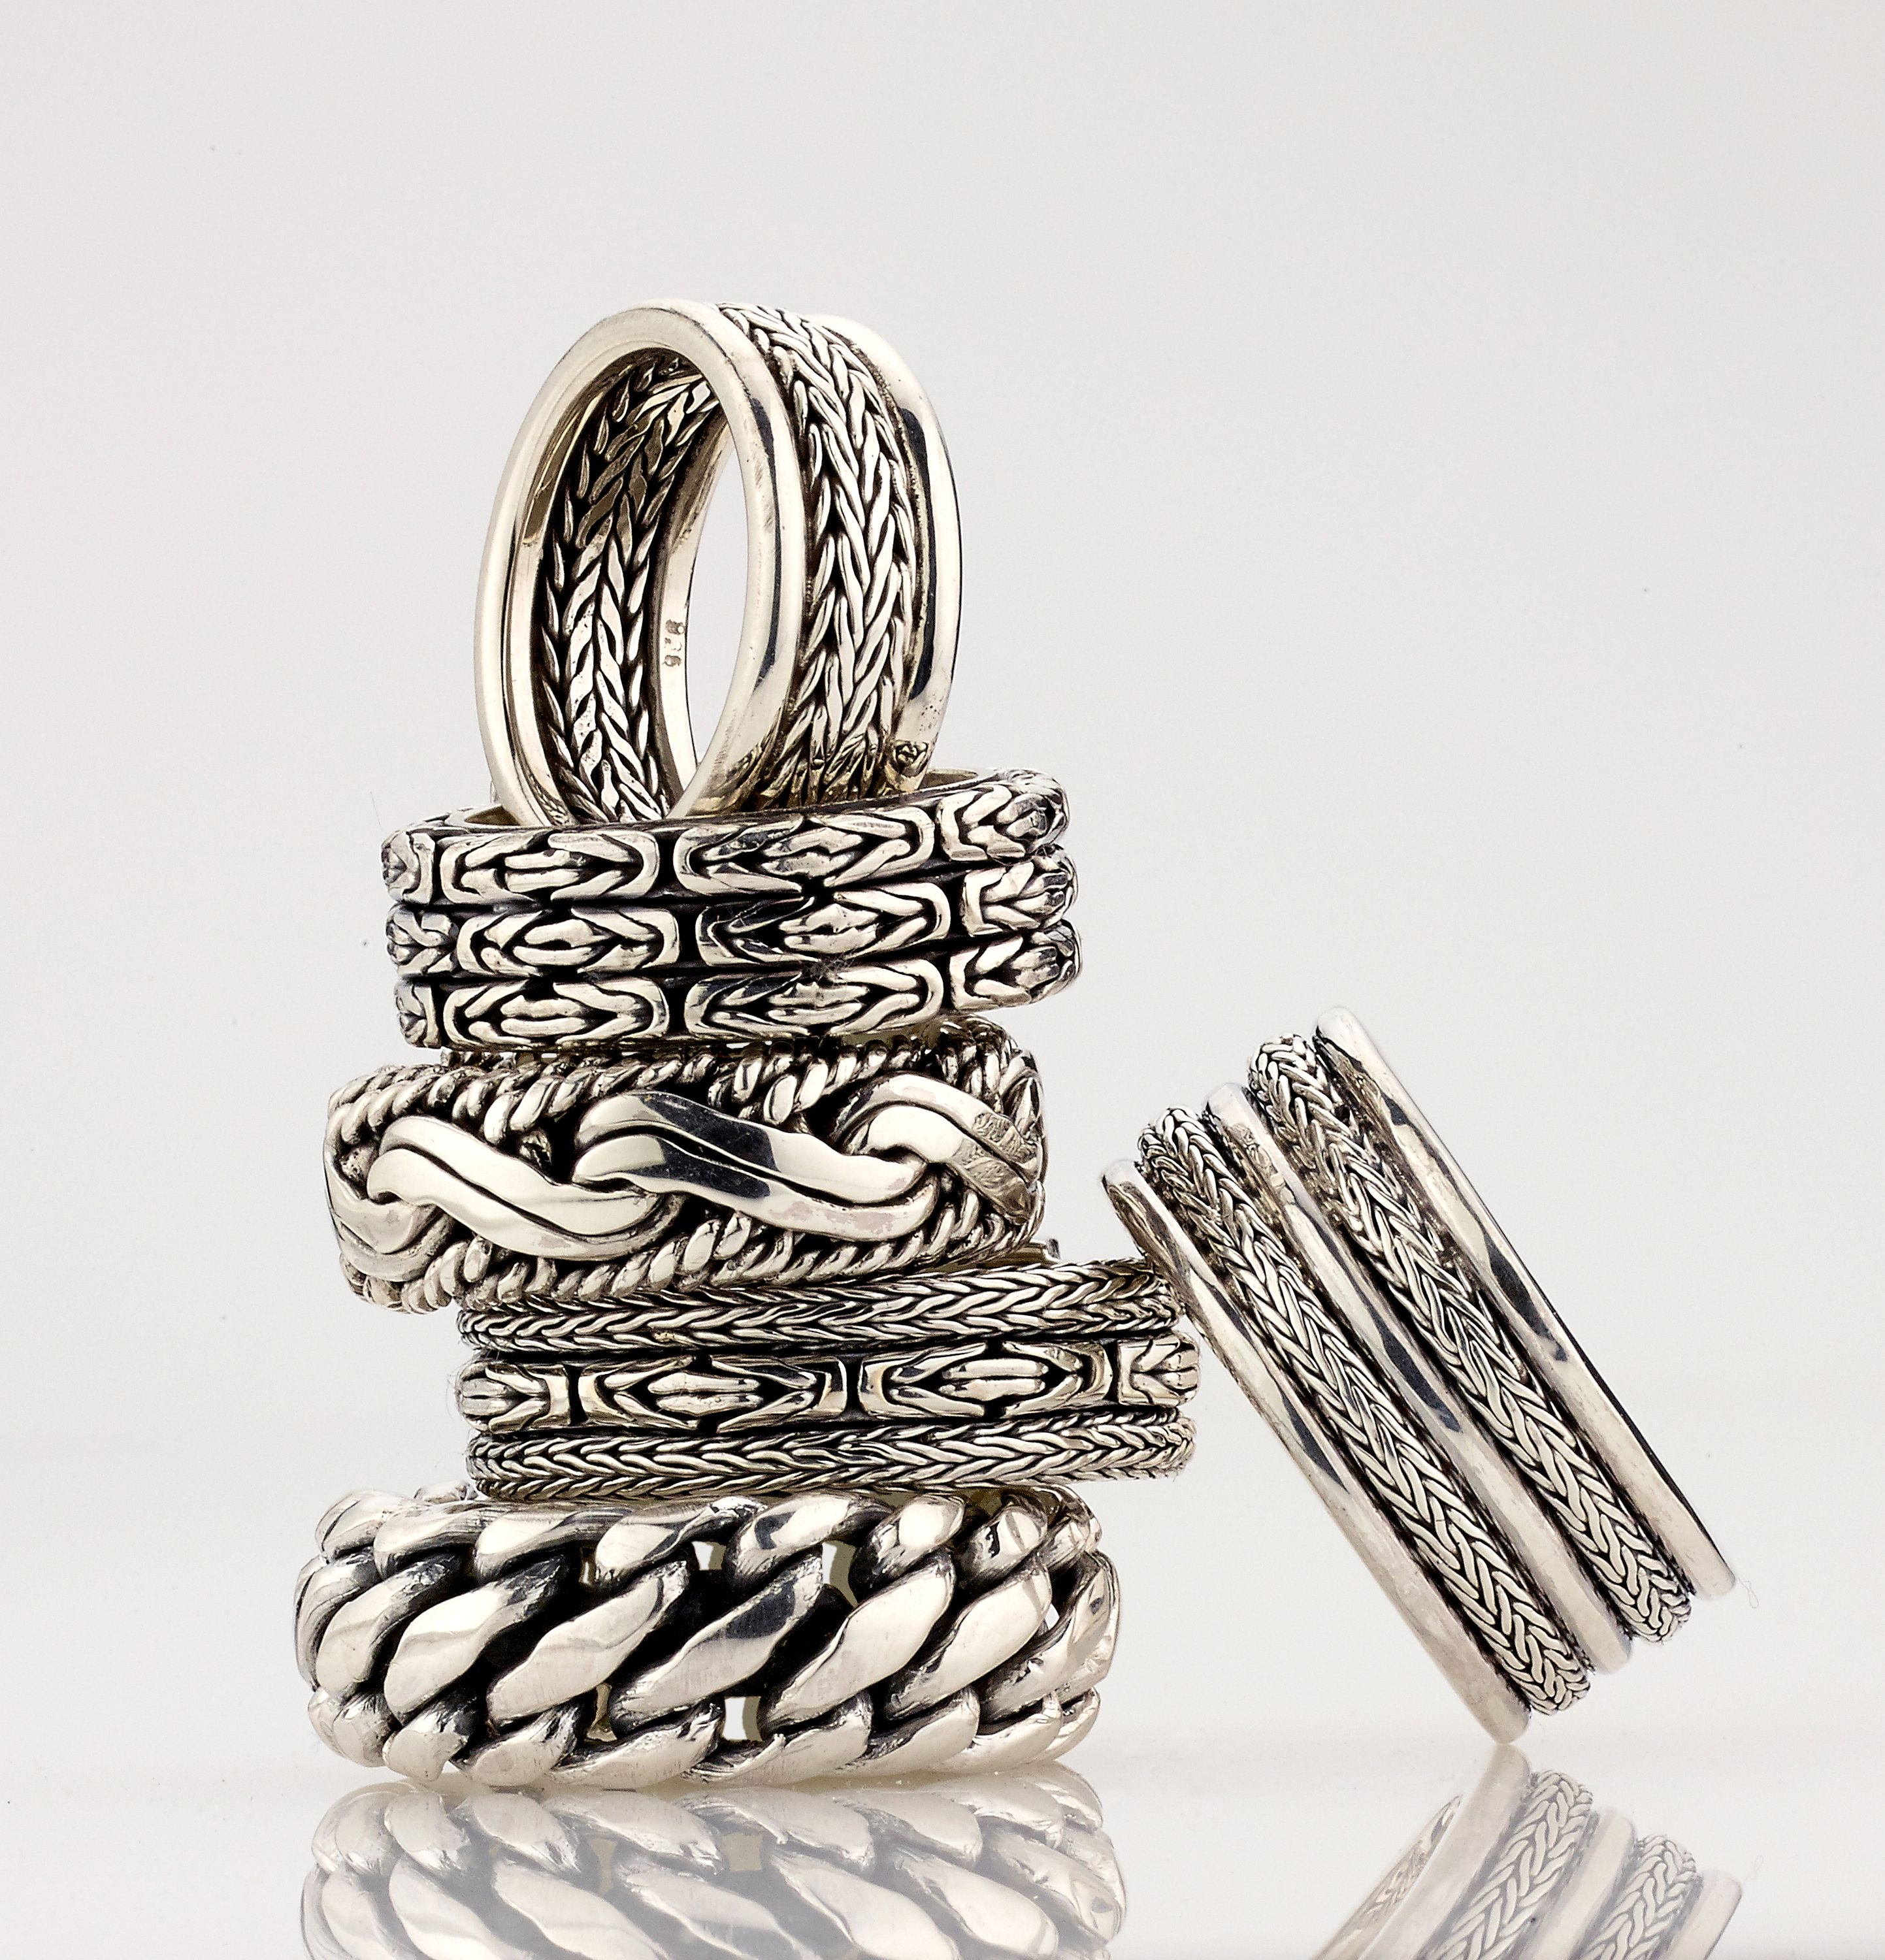 All hand made 925 Sterling silver by Samuel B JCK -booth B-5166